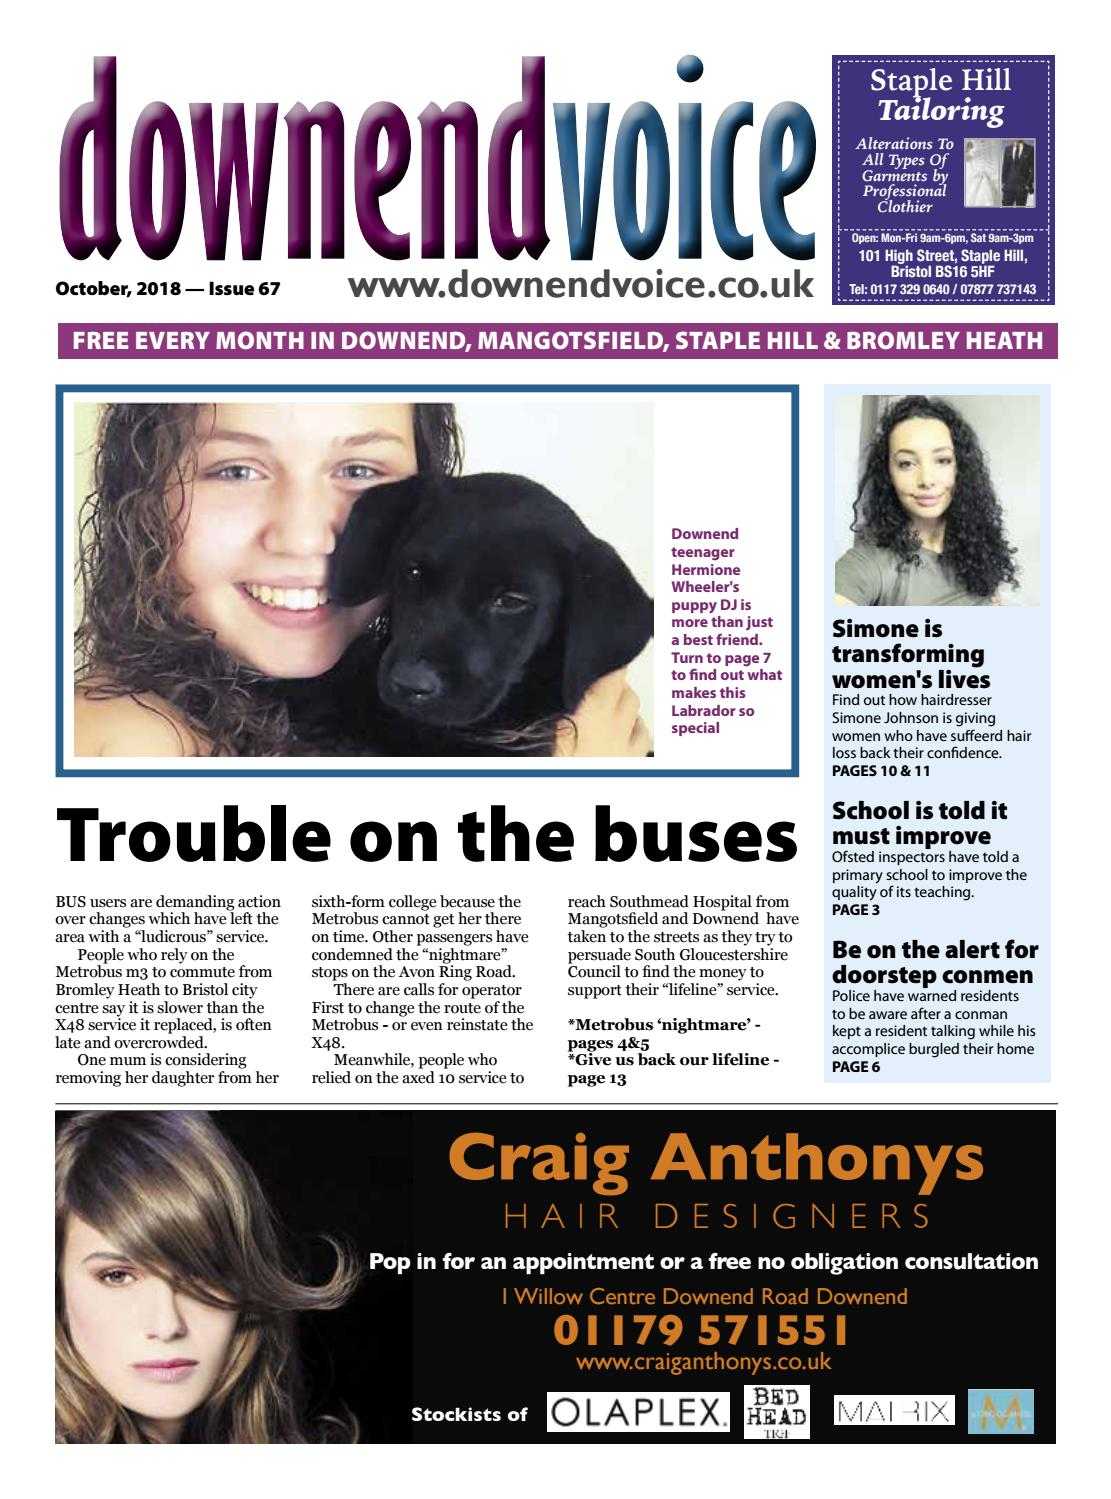 Downend Voice October 2018 By Gary Brindle Issuu Animal Scarer Hobby Circuits And Projects